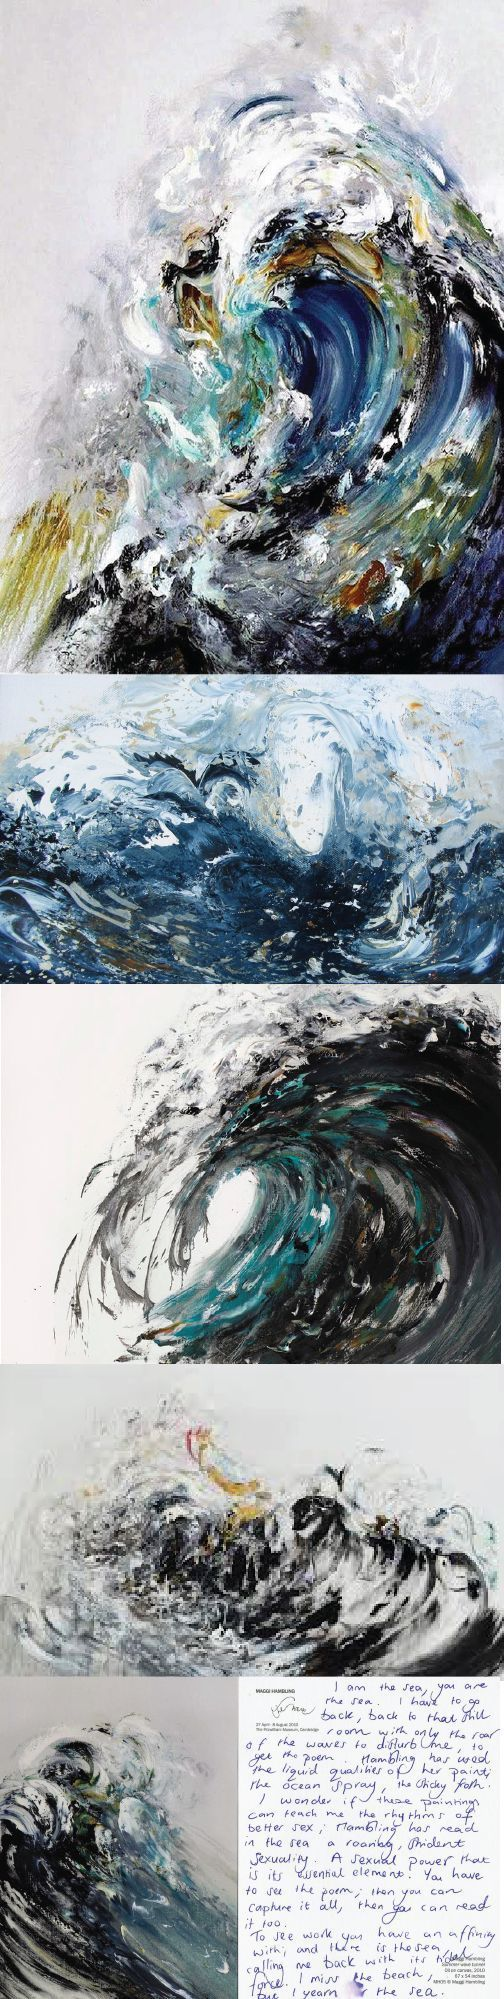 """I try to paint the sound of the sea"", Maggi Hambling. The World's 12 Most Important Female Painters on TheCultureTrip.com. (Image via curiouspeeps.net)"